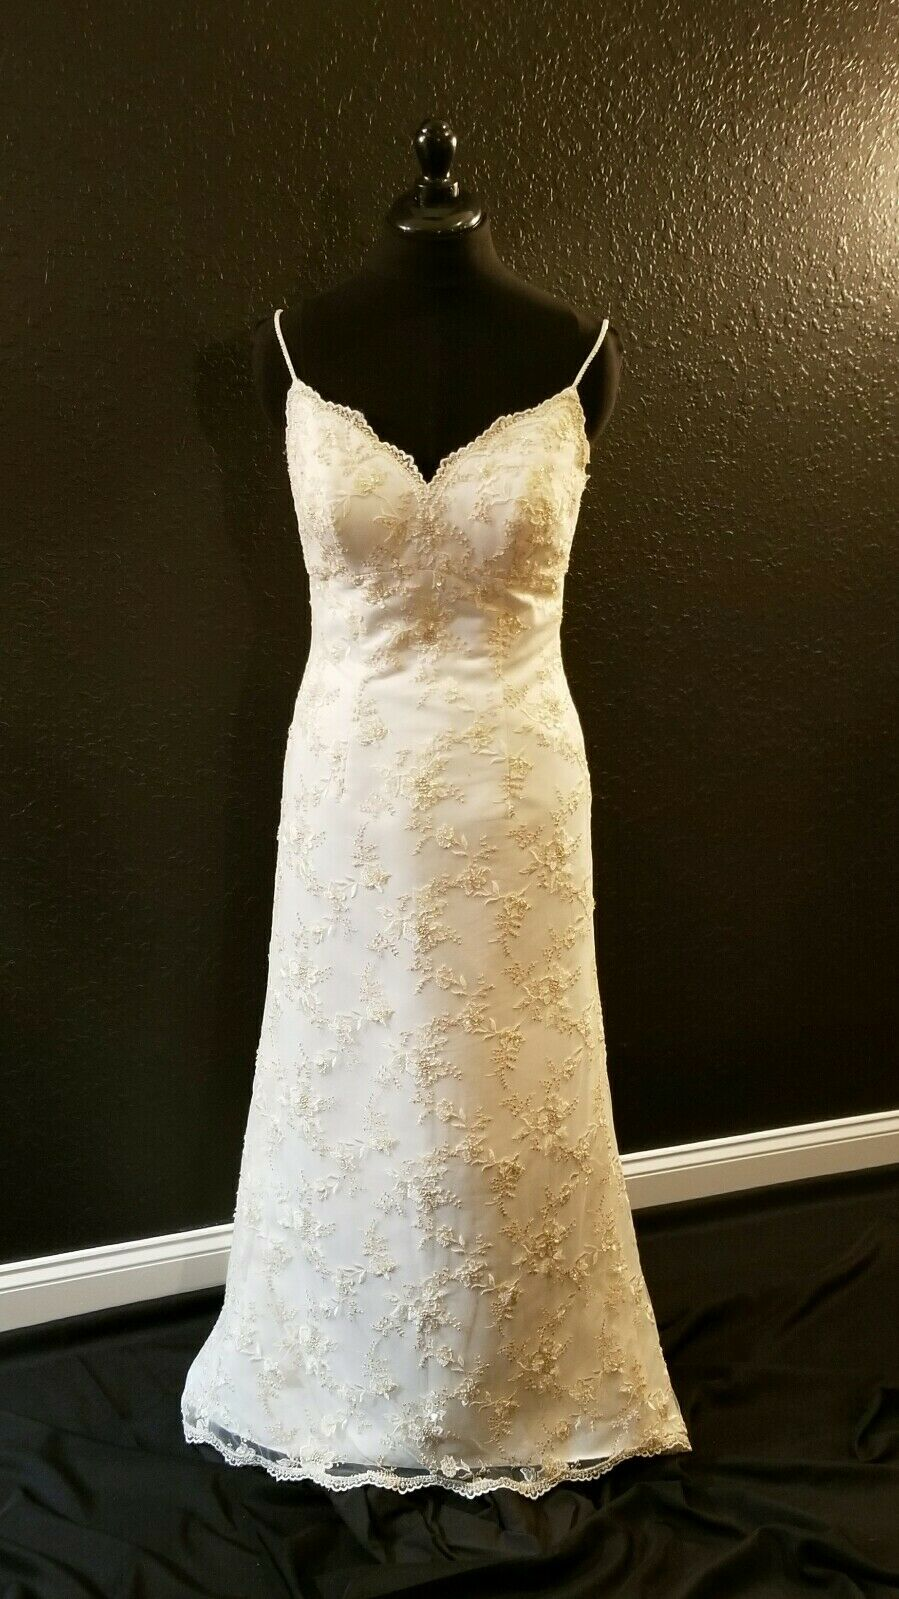 Elegant Chantilly Lace Sheath Wedding Dress from the Oleg Cassini Collection